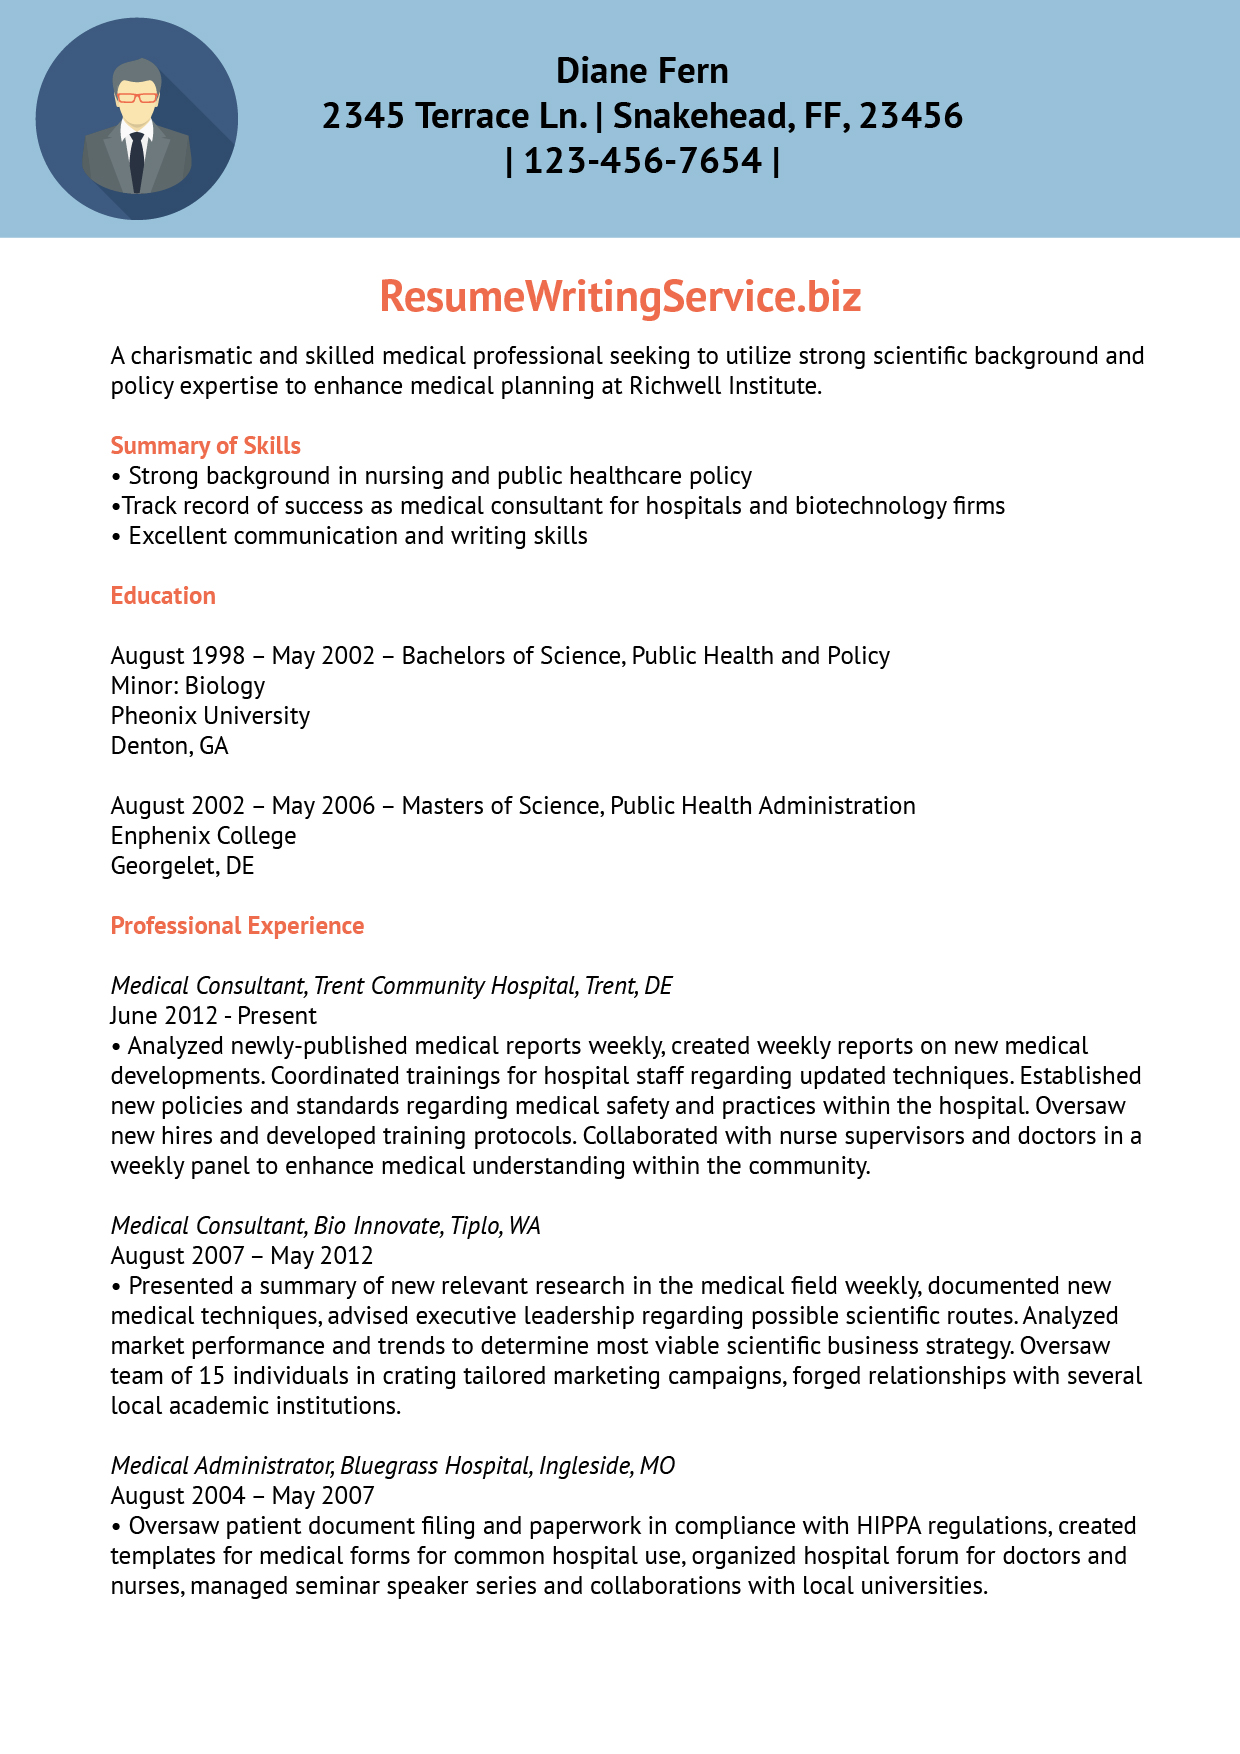 Resume Writing Service  Medical Professional Resume